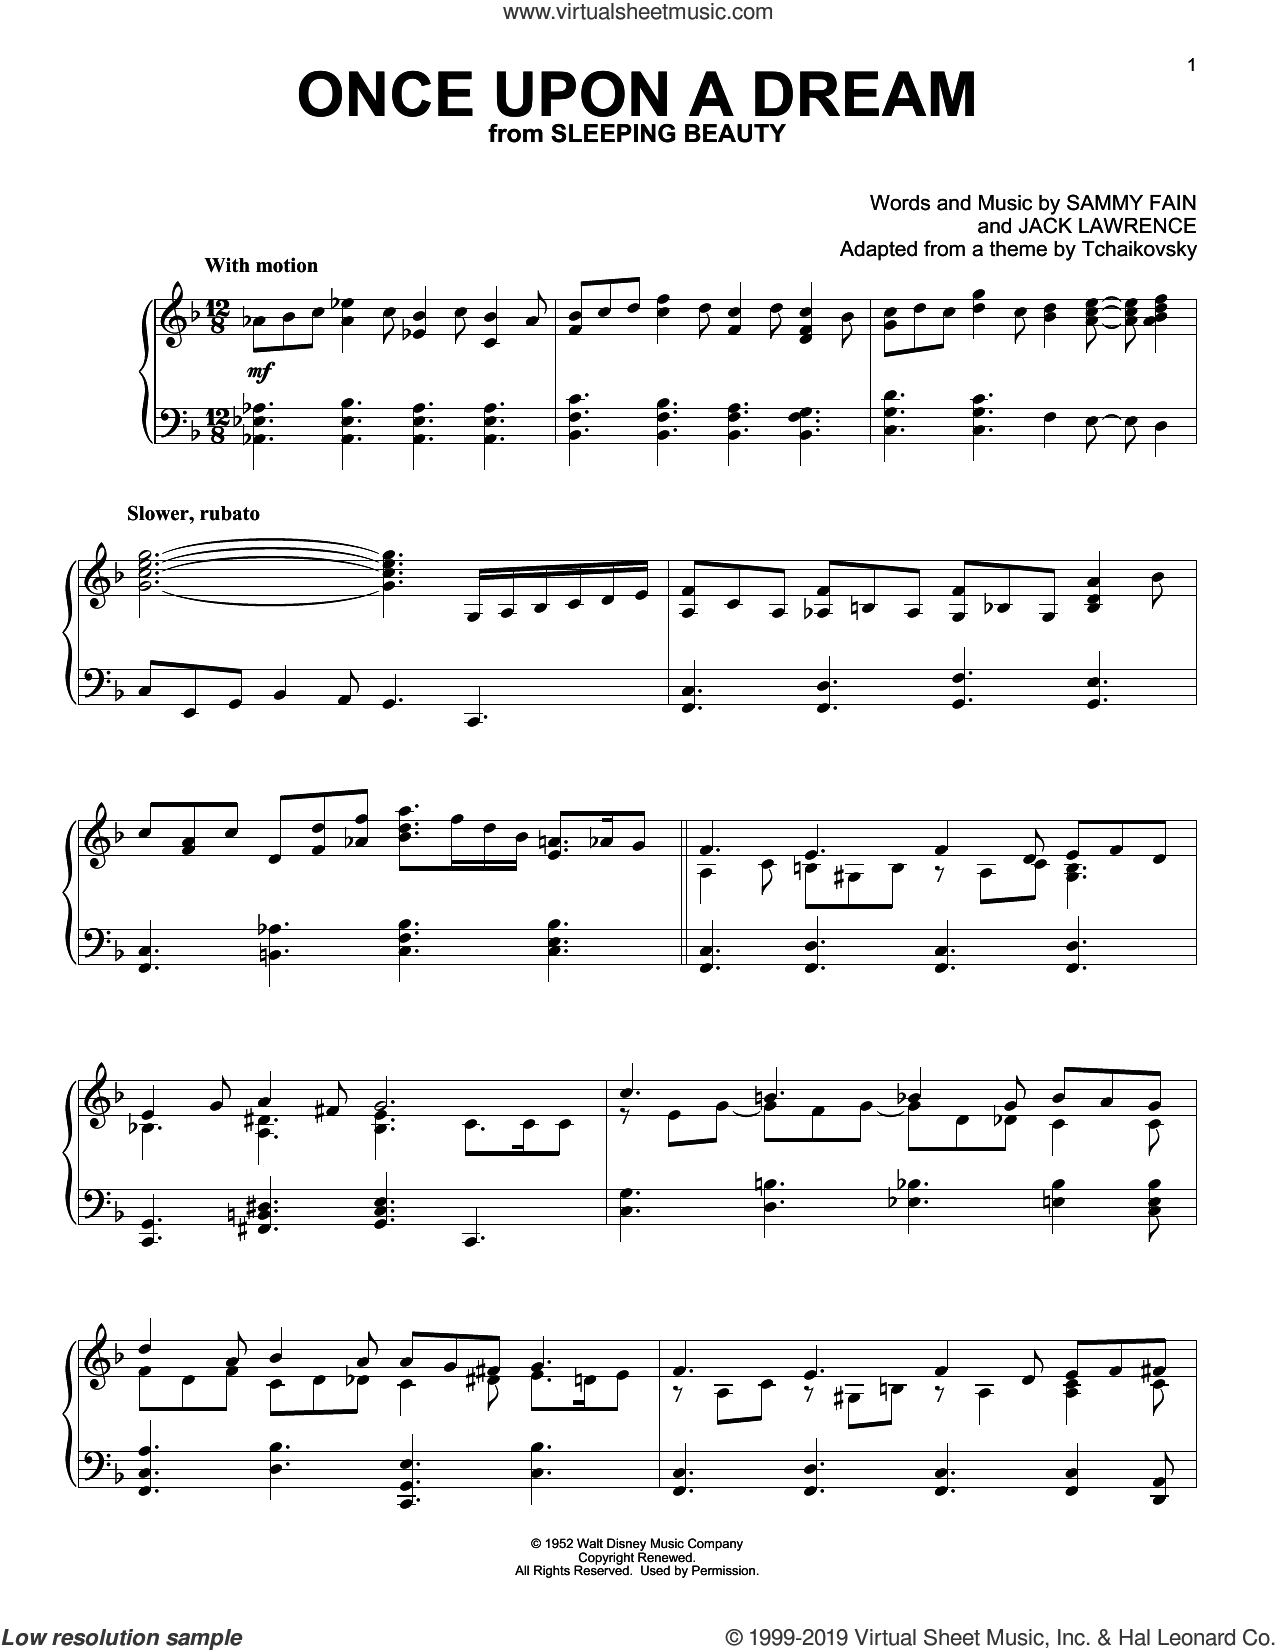 Once Upon A Dream (from Sleeping Beauty) sheet music for piano solo by Sammy Fain and Jack Lawrence, intermediate skill level